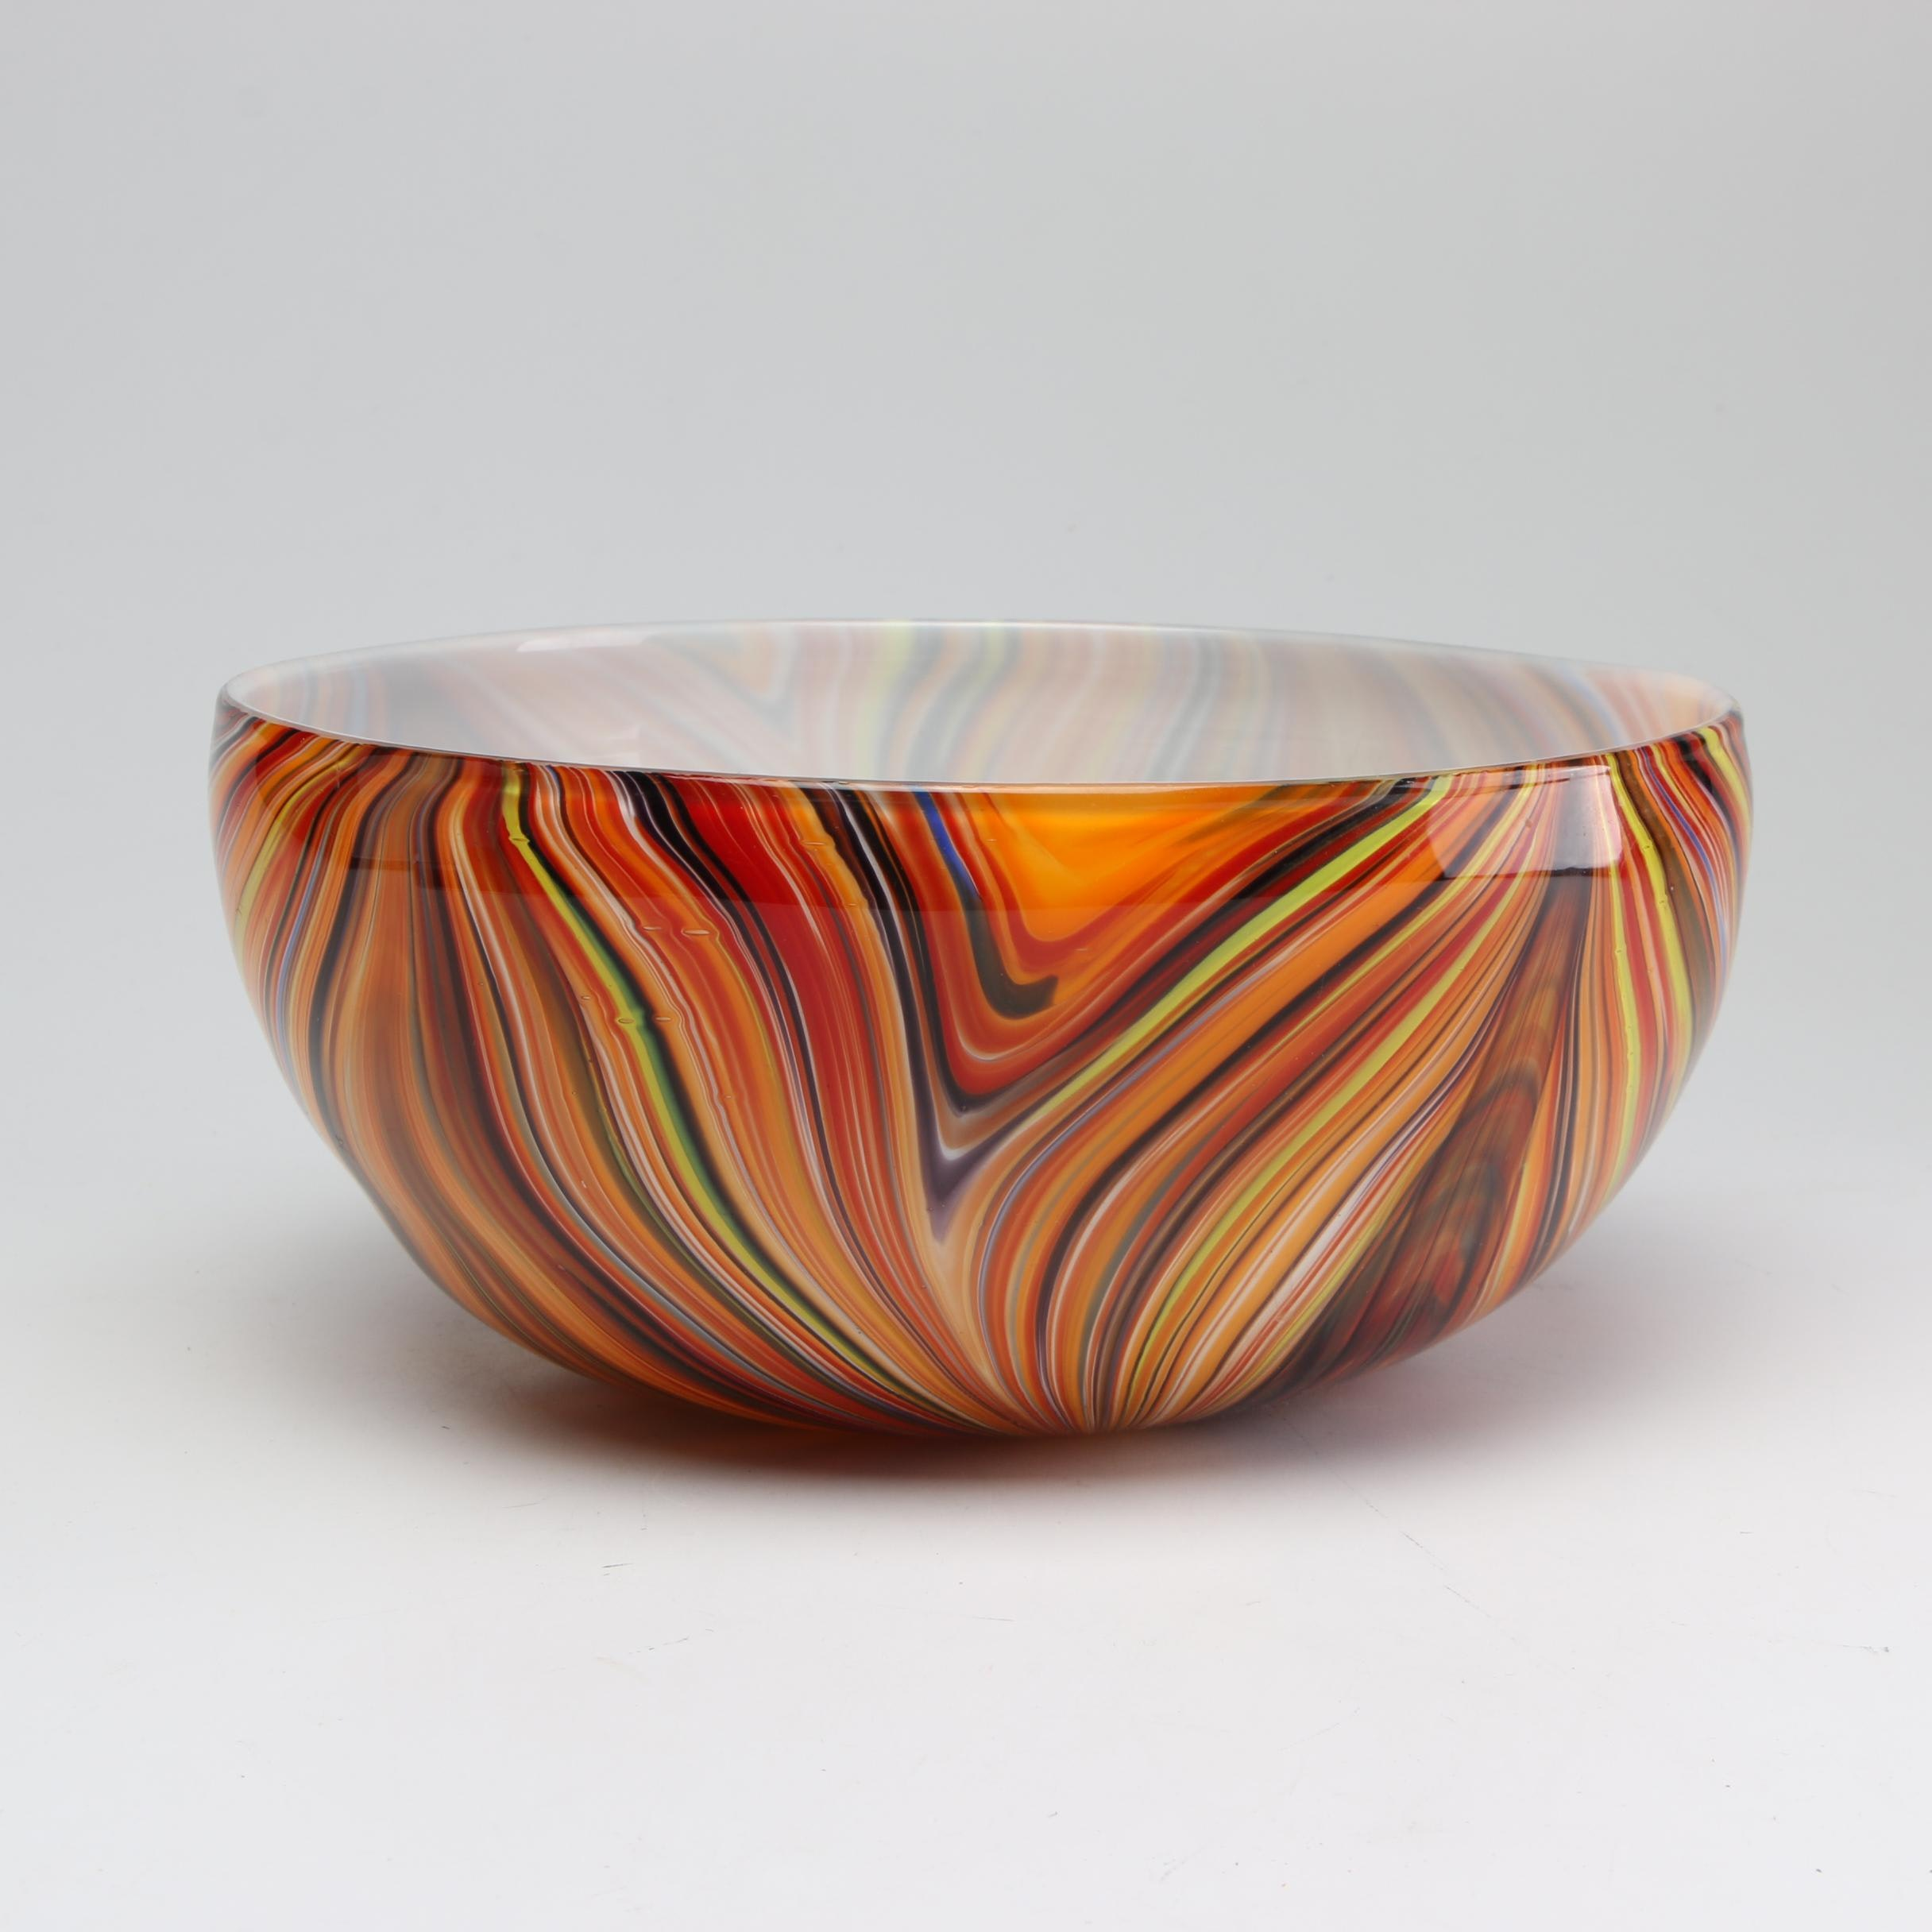 Missoni for Target Blown Glass Bowl, Limited Edition